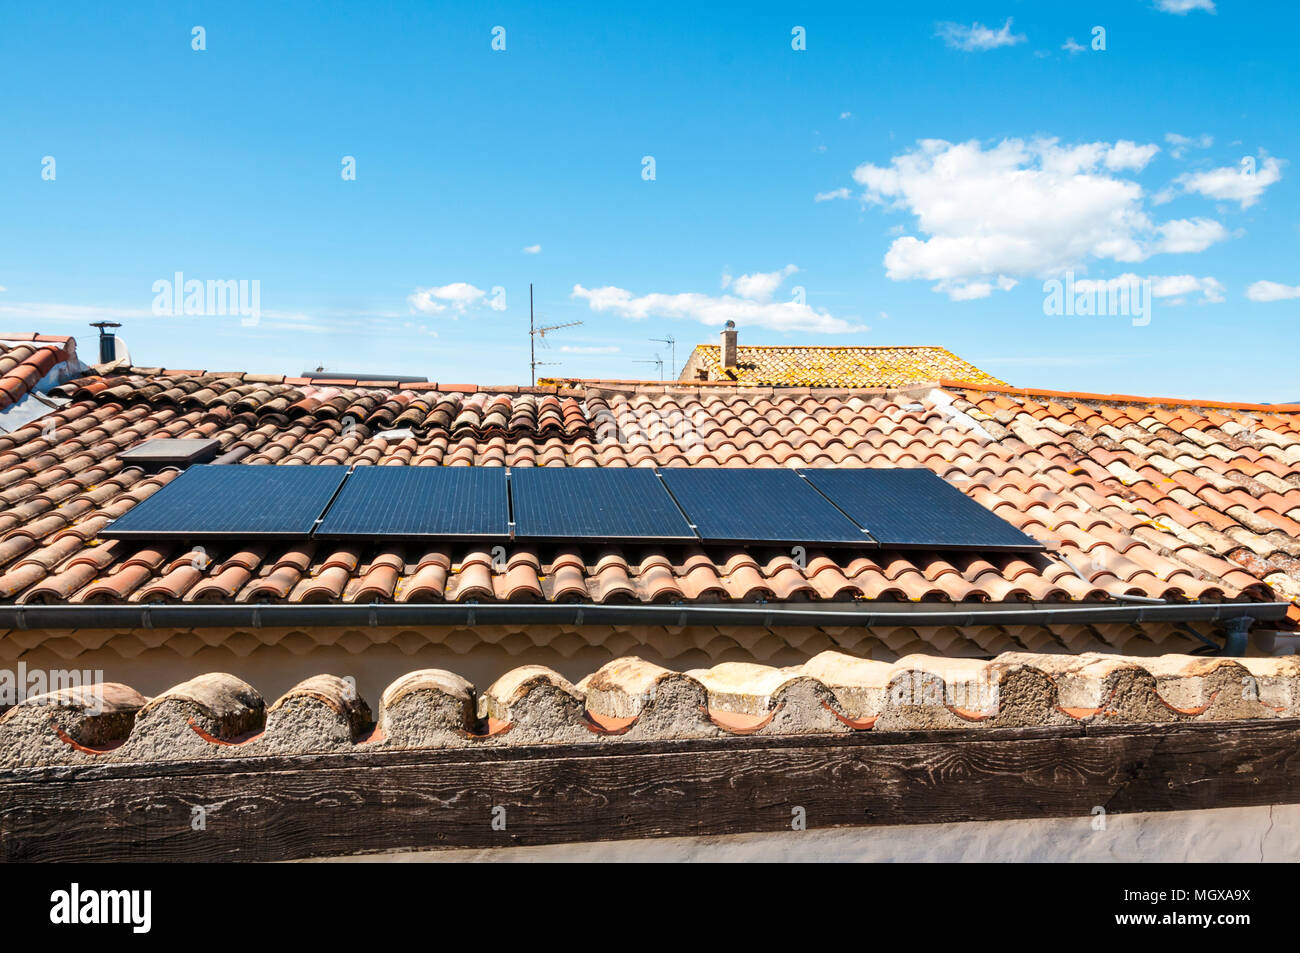 Solar panels on tiled roof of a house in a small Languedoc village in southern France. - Stock Image